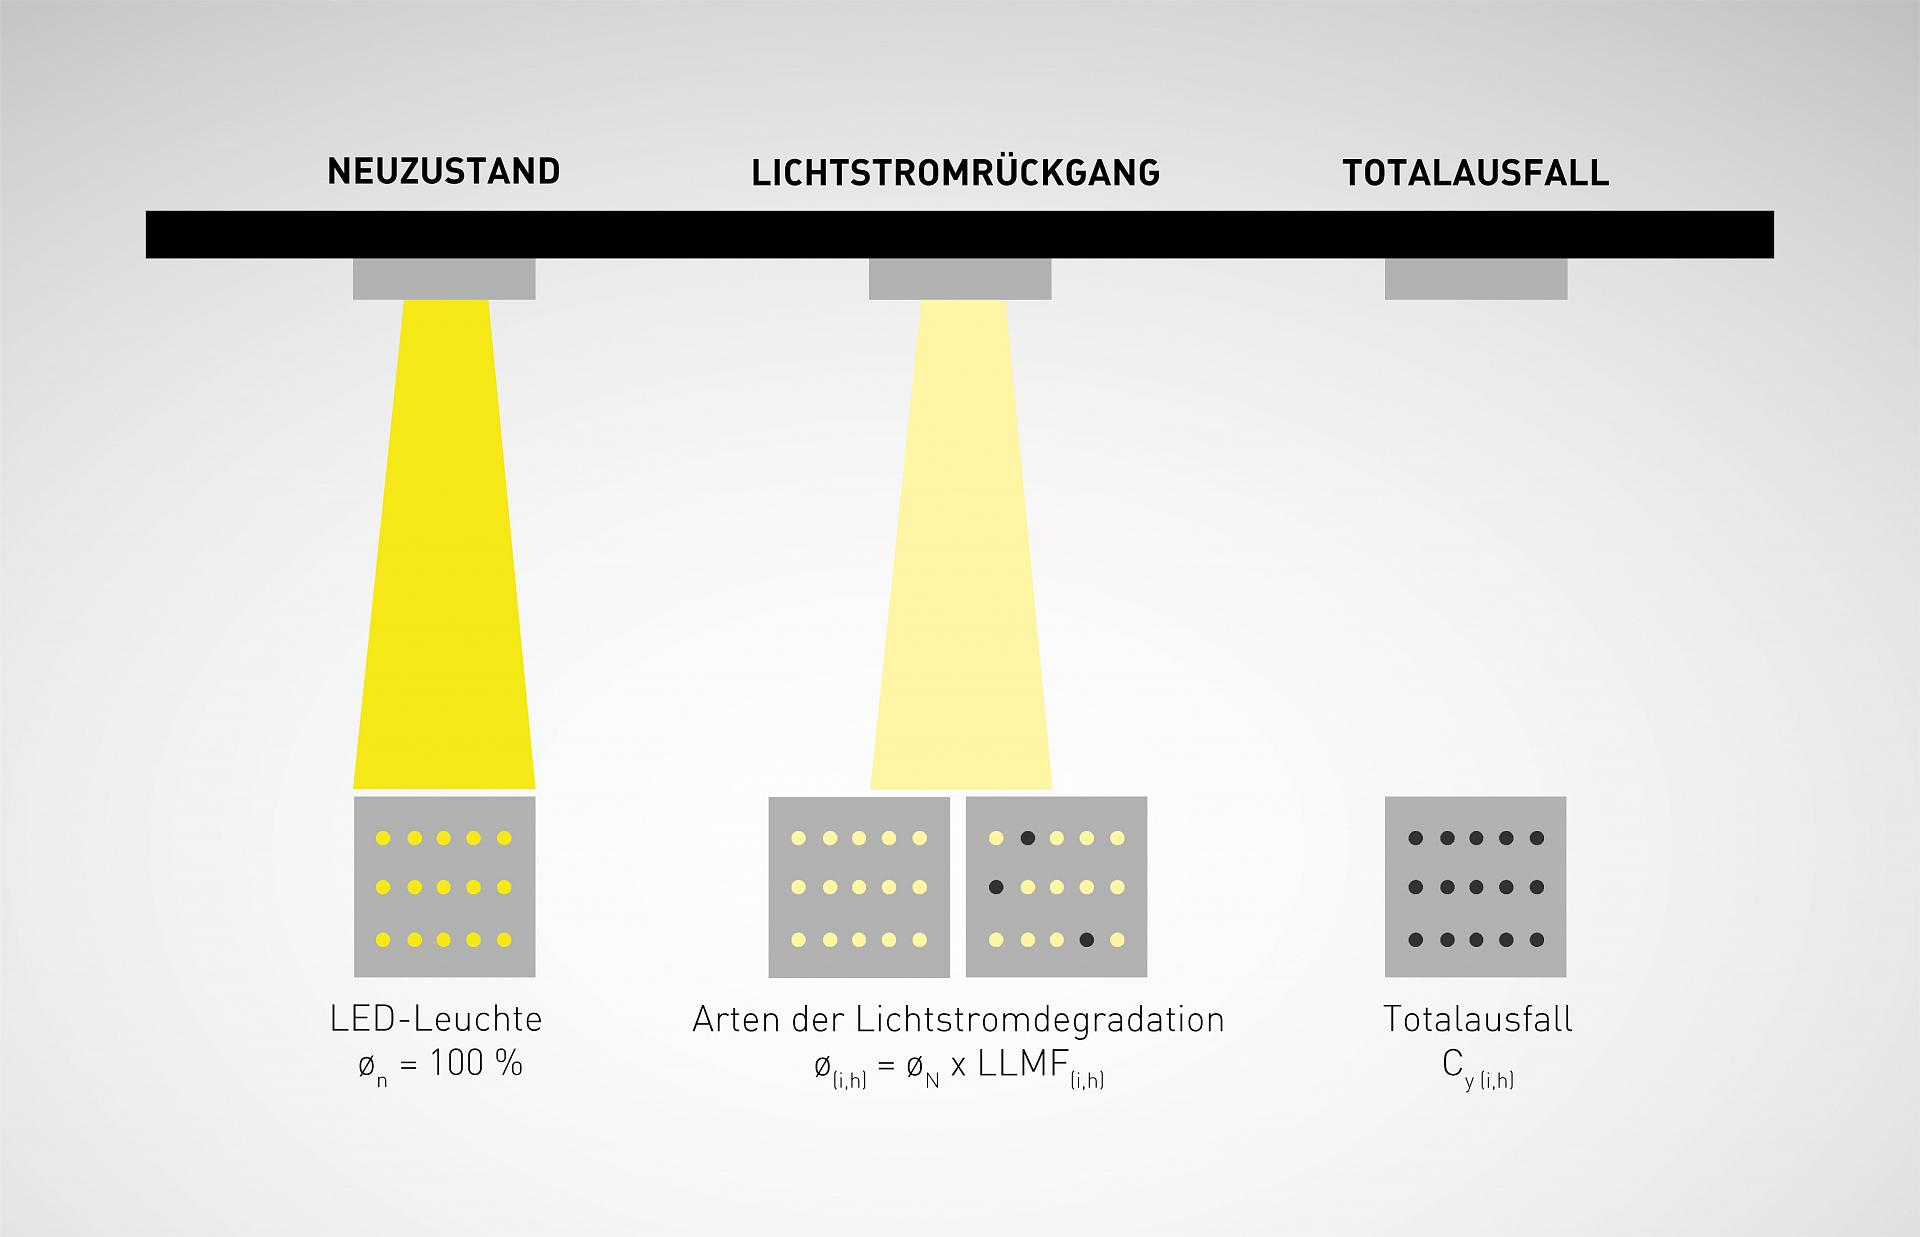 What affects the service life of LED lamps 69